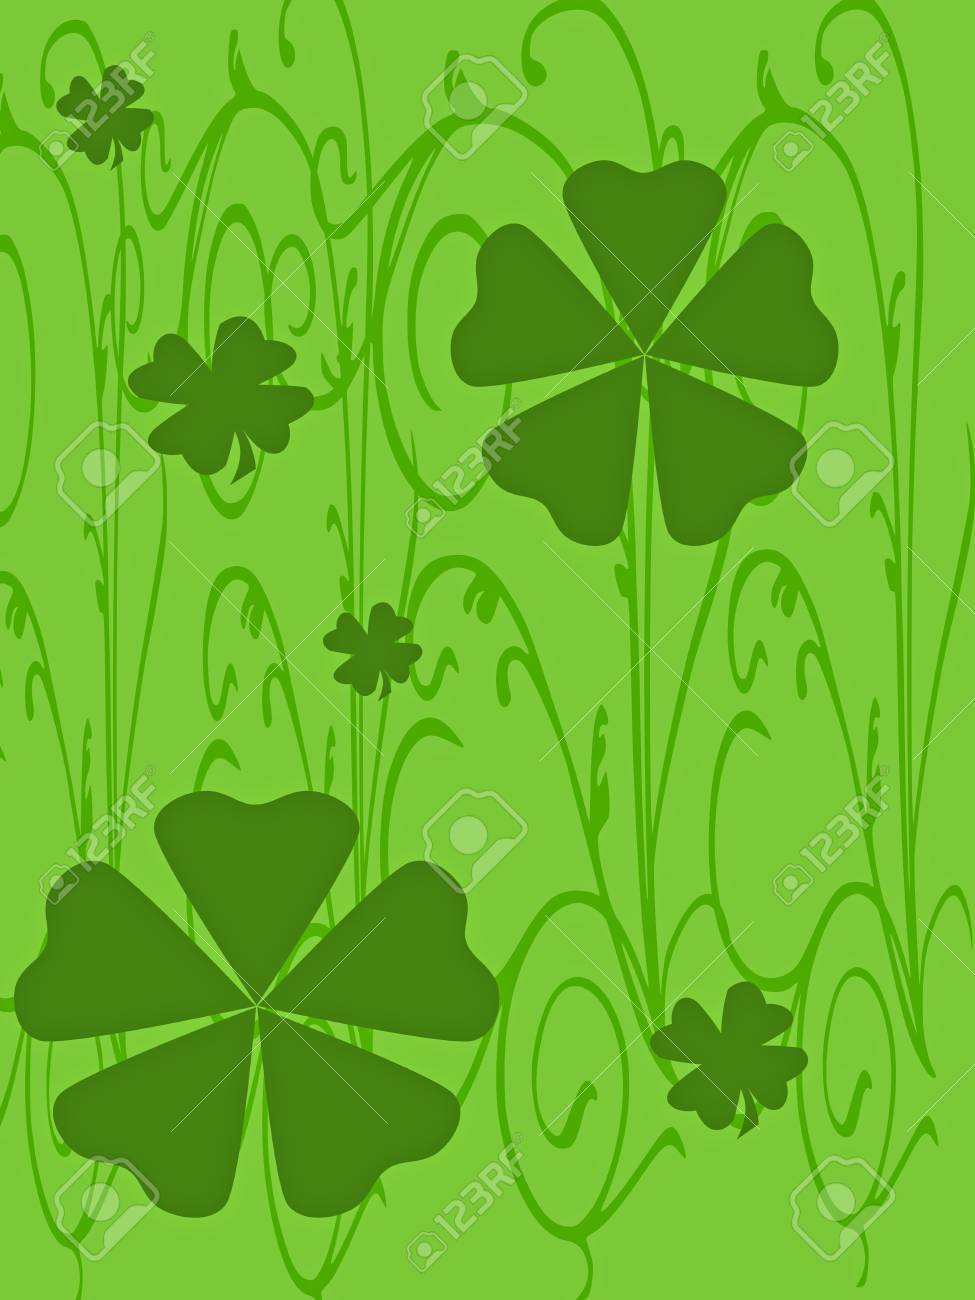 Clovers of different sizes and colors on a green background. Stock Photo - 4328527